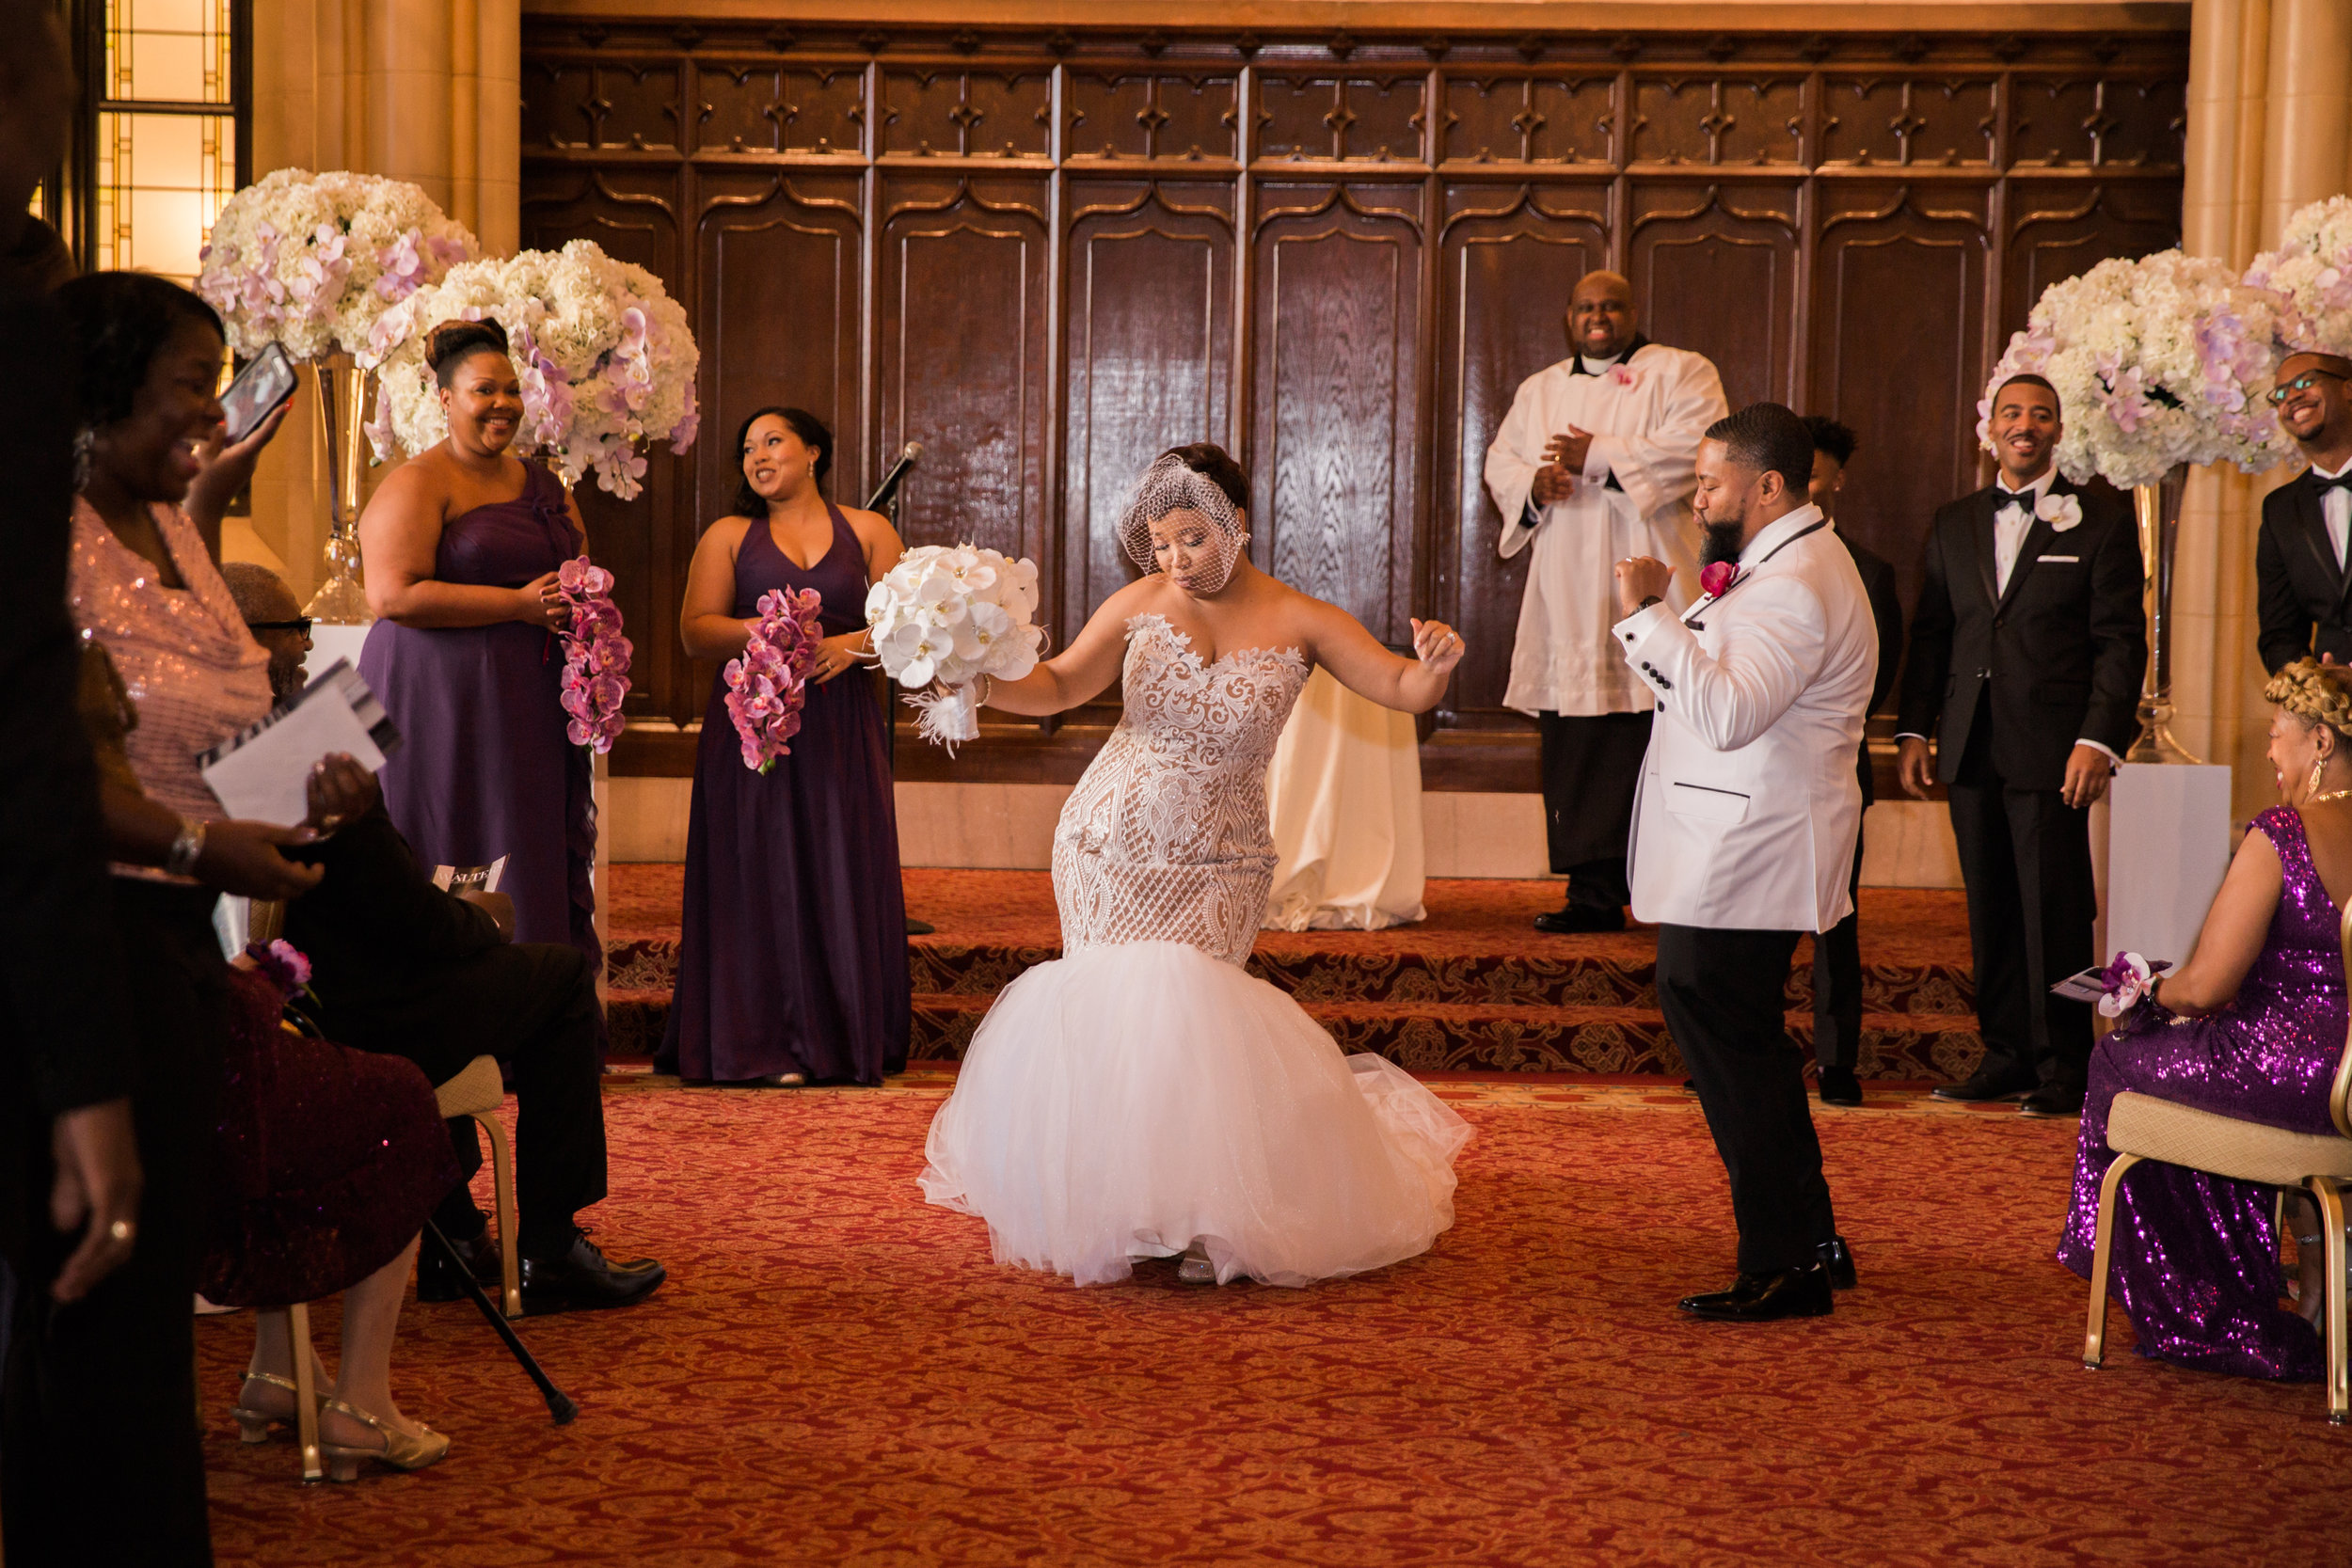 Best Classic Black Bride at The Grand Baltimore Maryland Husband and Wife Wedding Photographers Megapixels Media (50 of 98).jpg